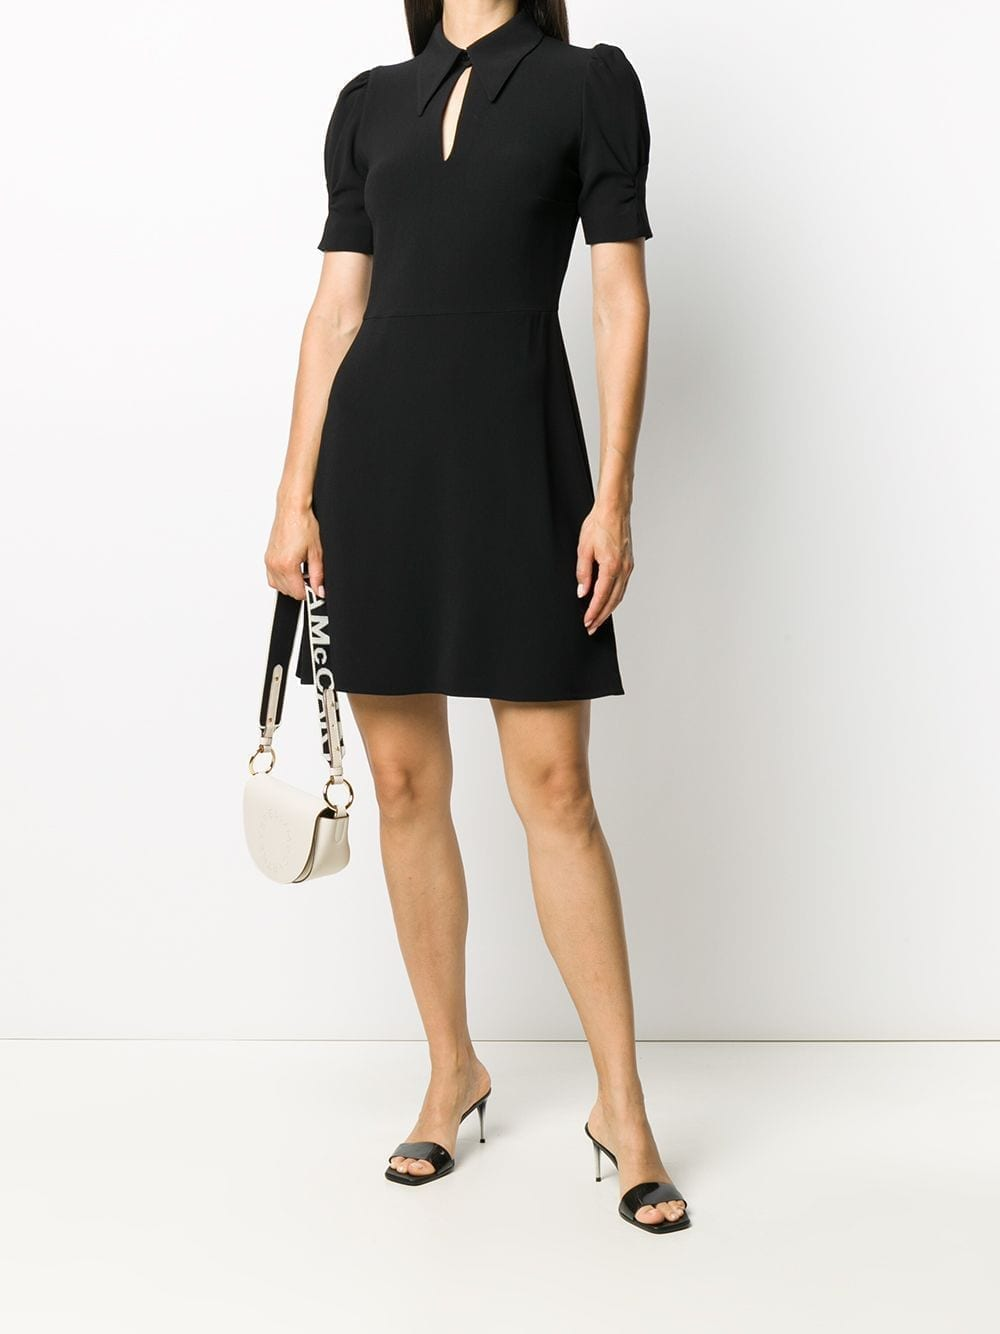 STELLA MCCARTNEY Short Sleeve Polo Dress